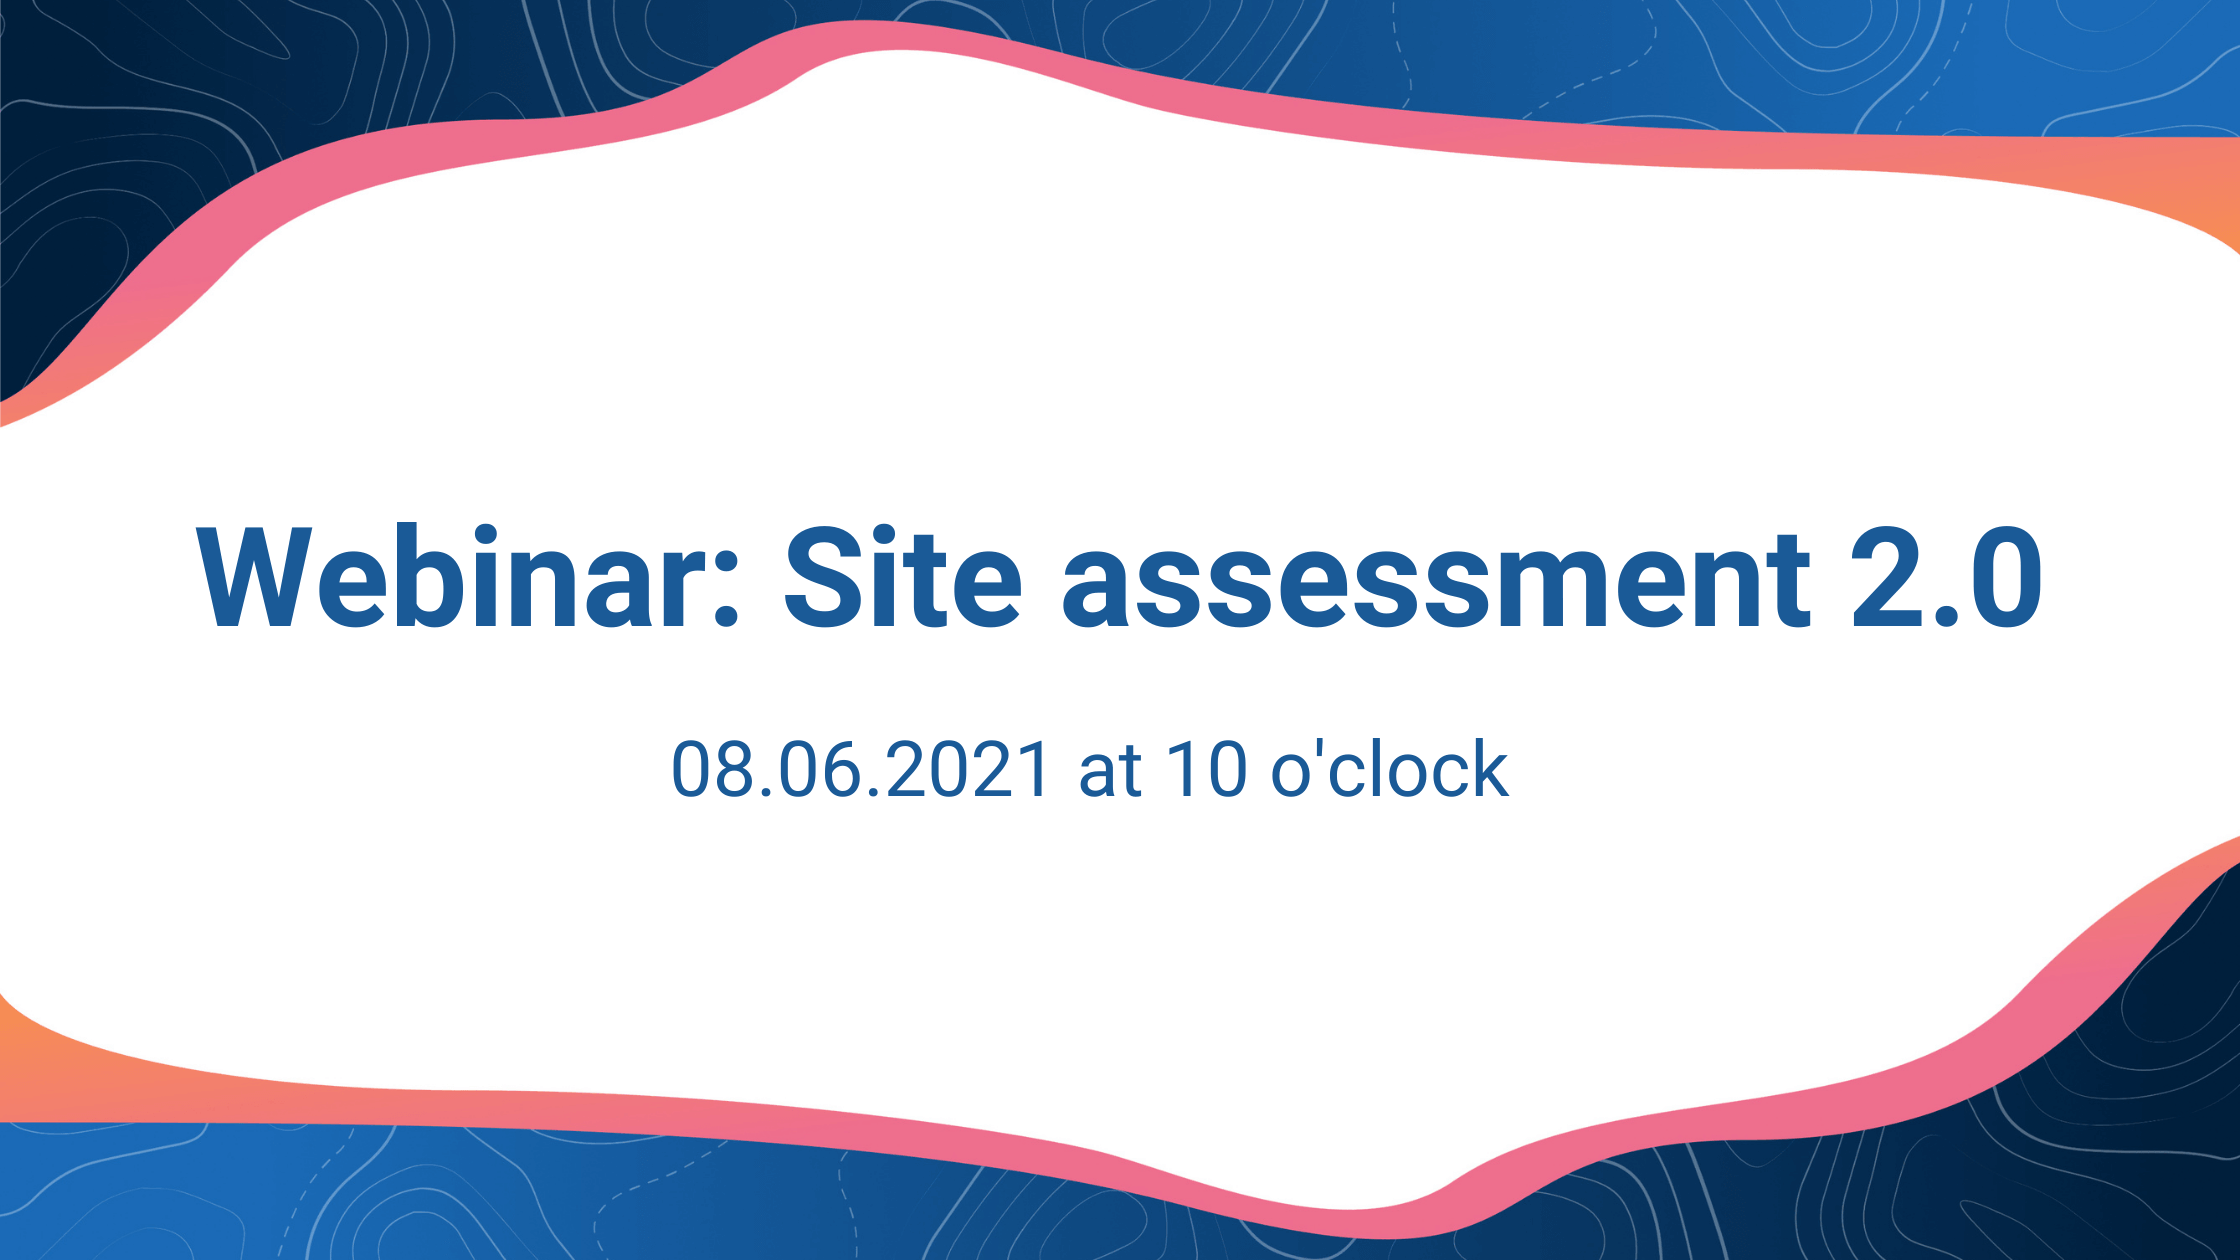 Webinar: with an intuitive online tool for site assessment 2.0